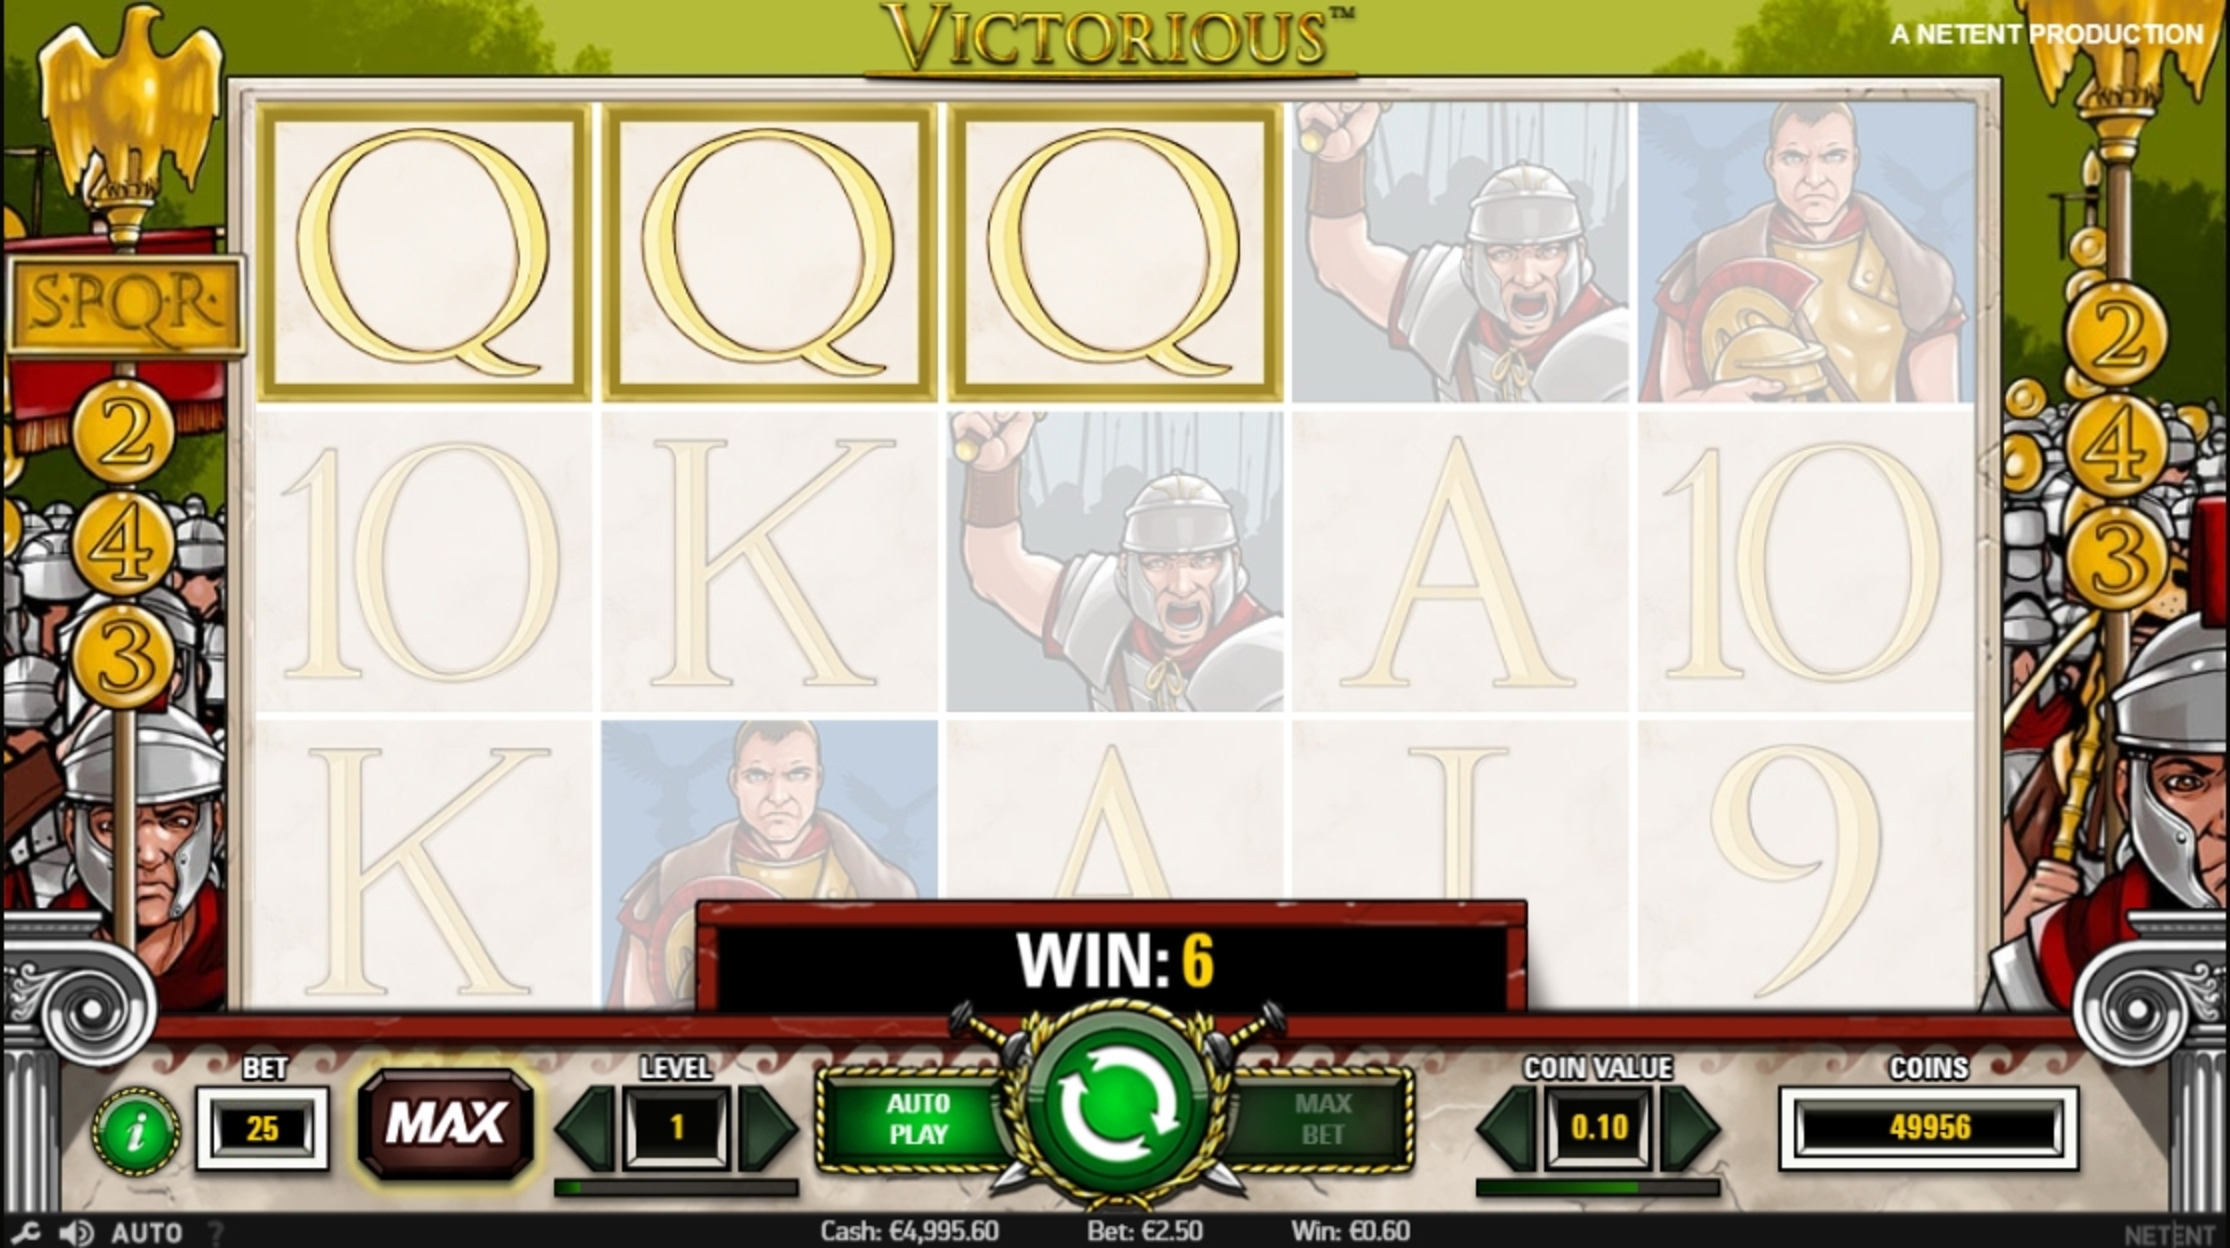 Win Money in Victorious Free Slot Game by NetEnt